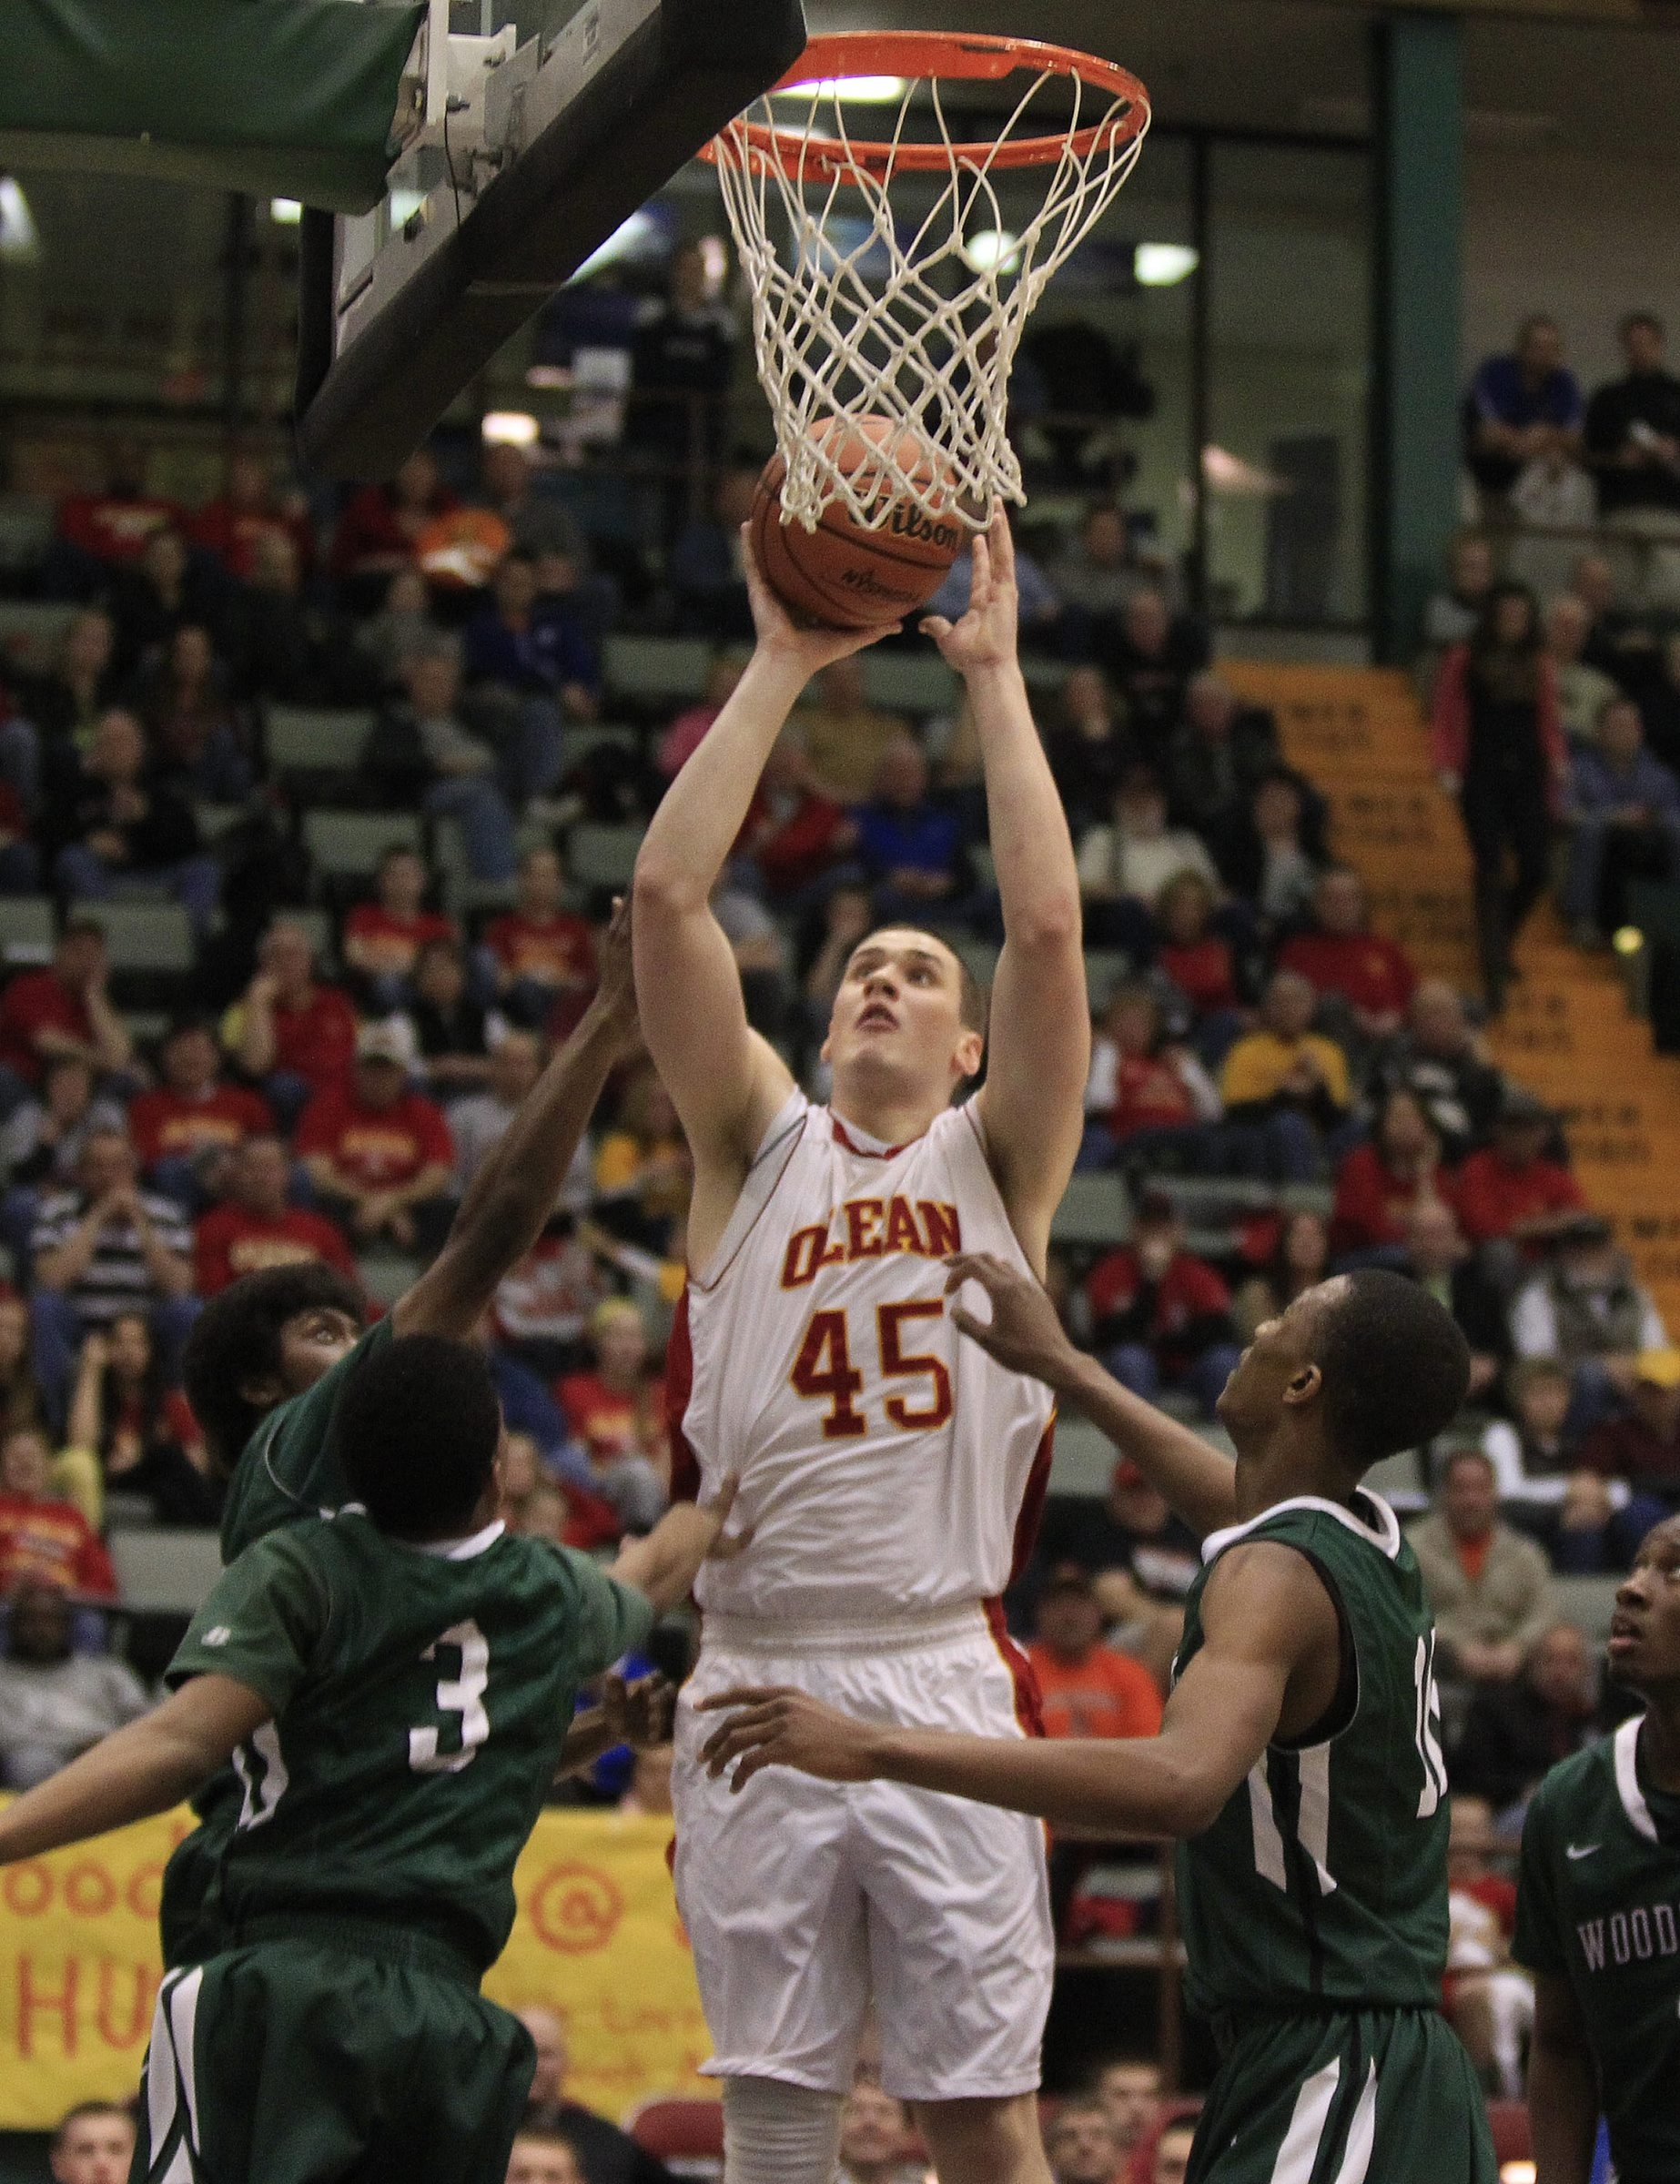 Olean's Sam Eckstrom shoots over three Woodlands players in Friday night's game.